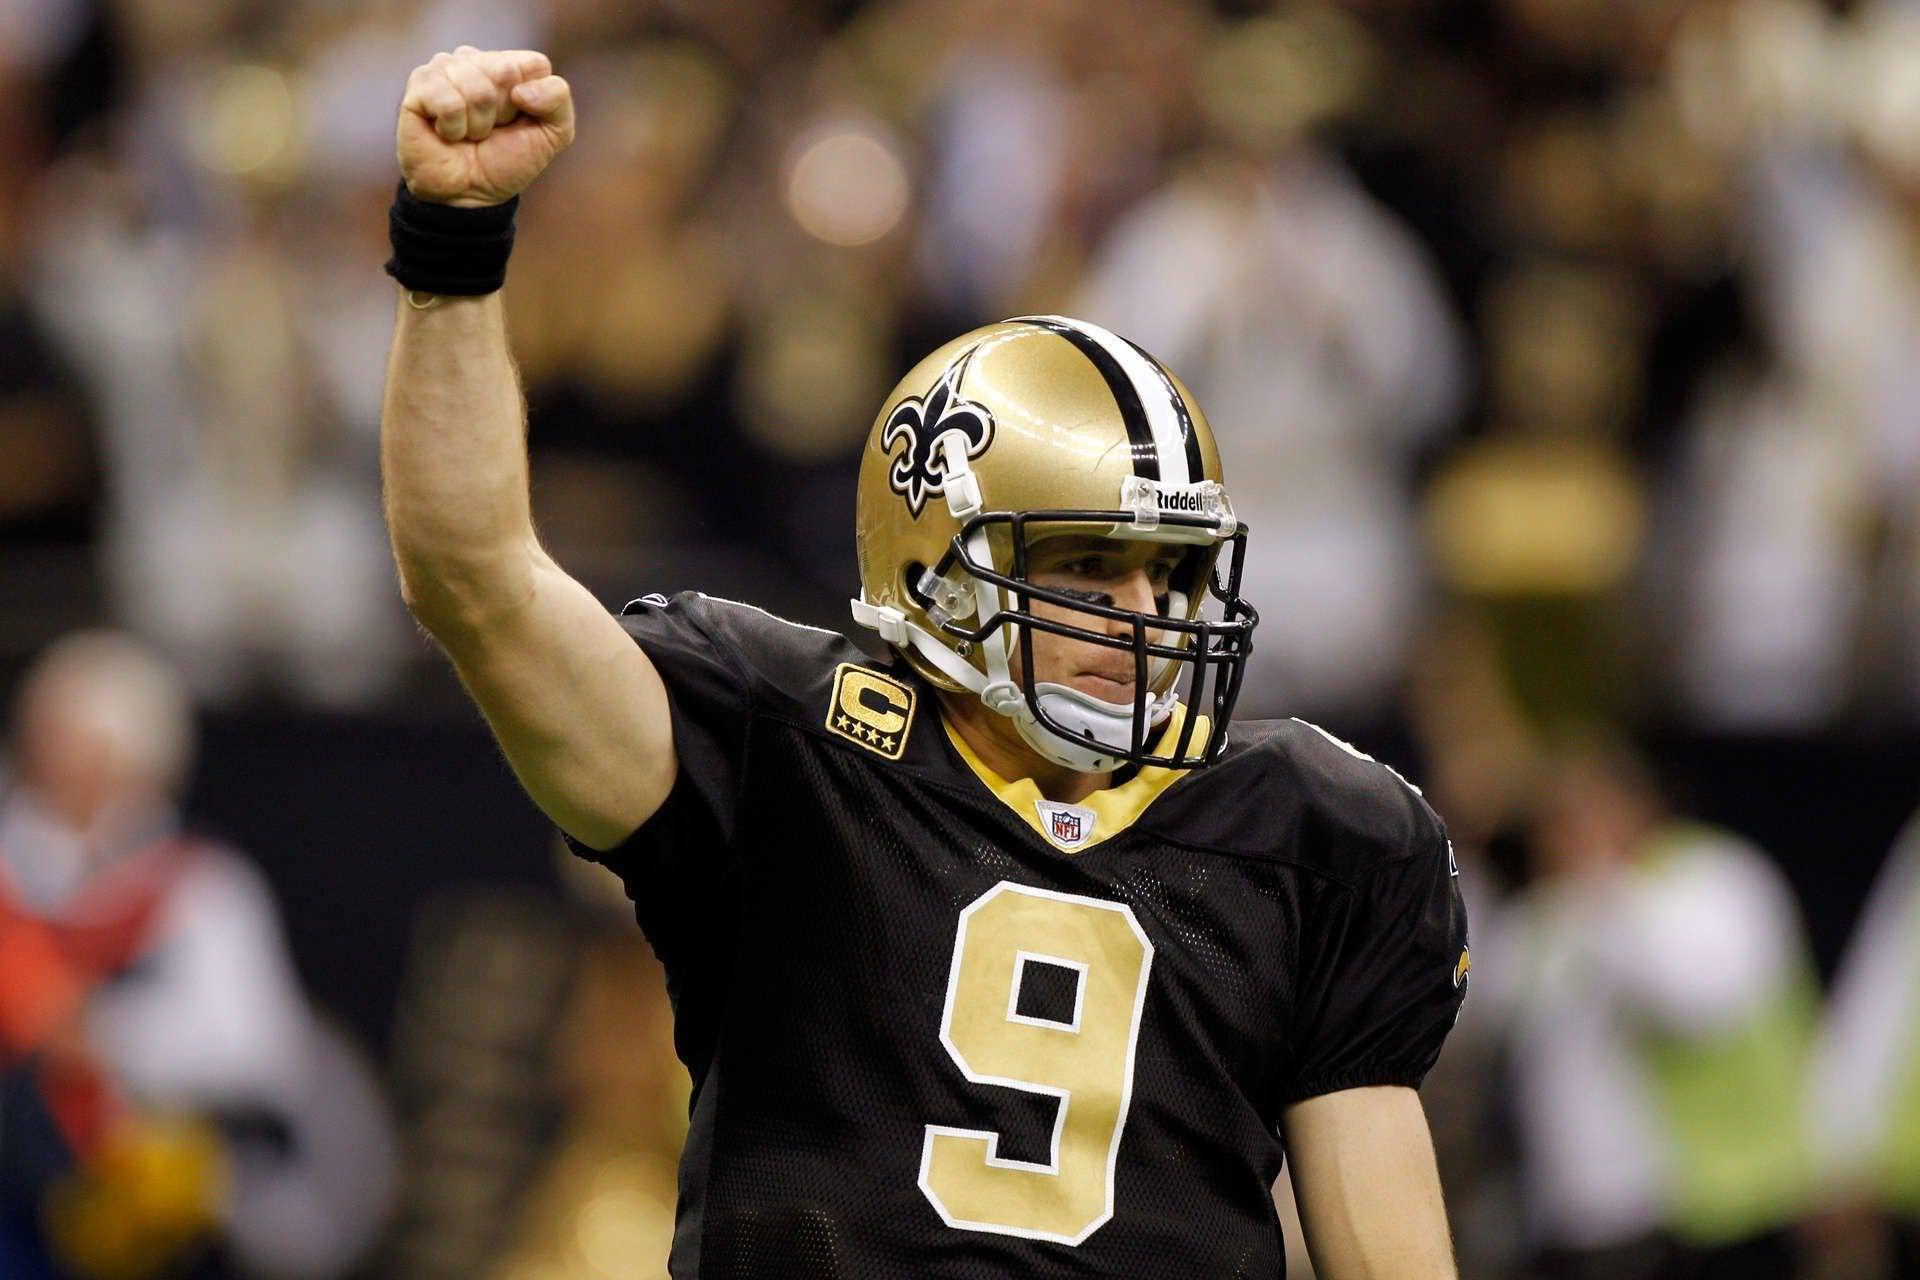 Drew Brees Wallpapers for Android   APK Download 1920x1280